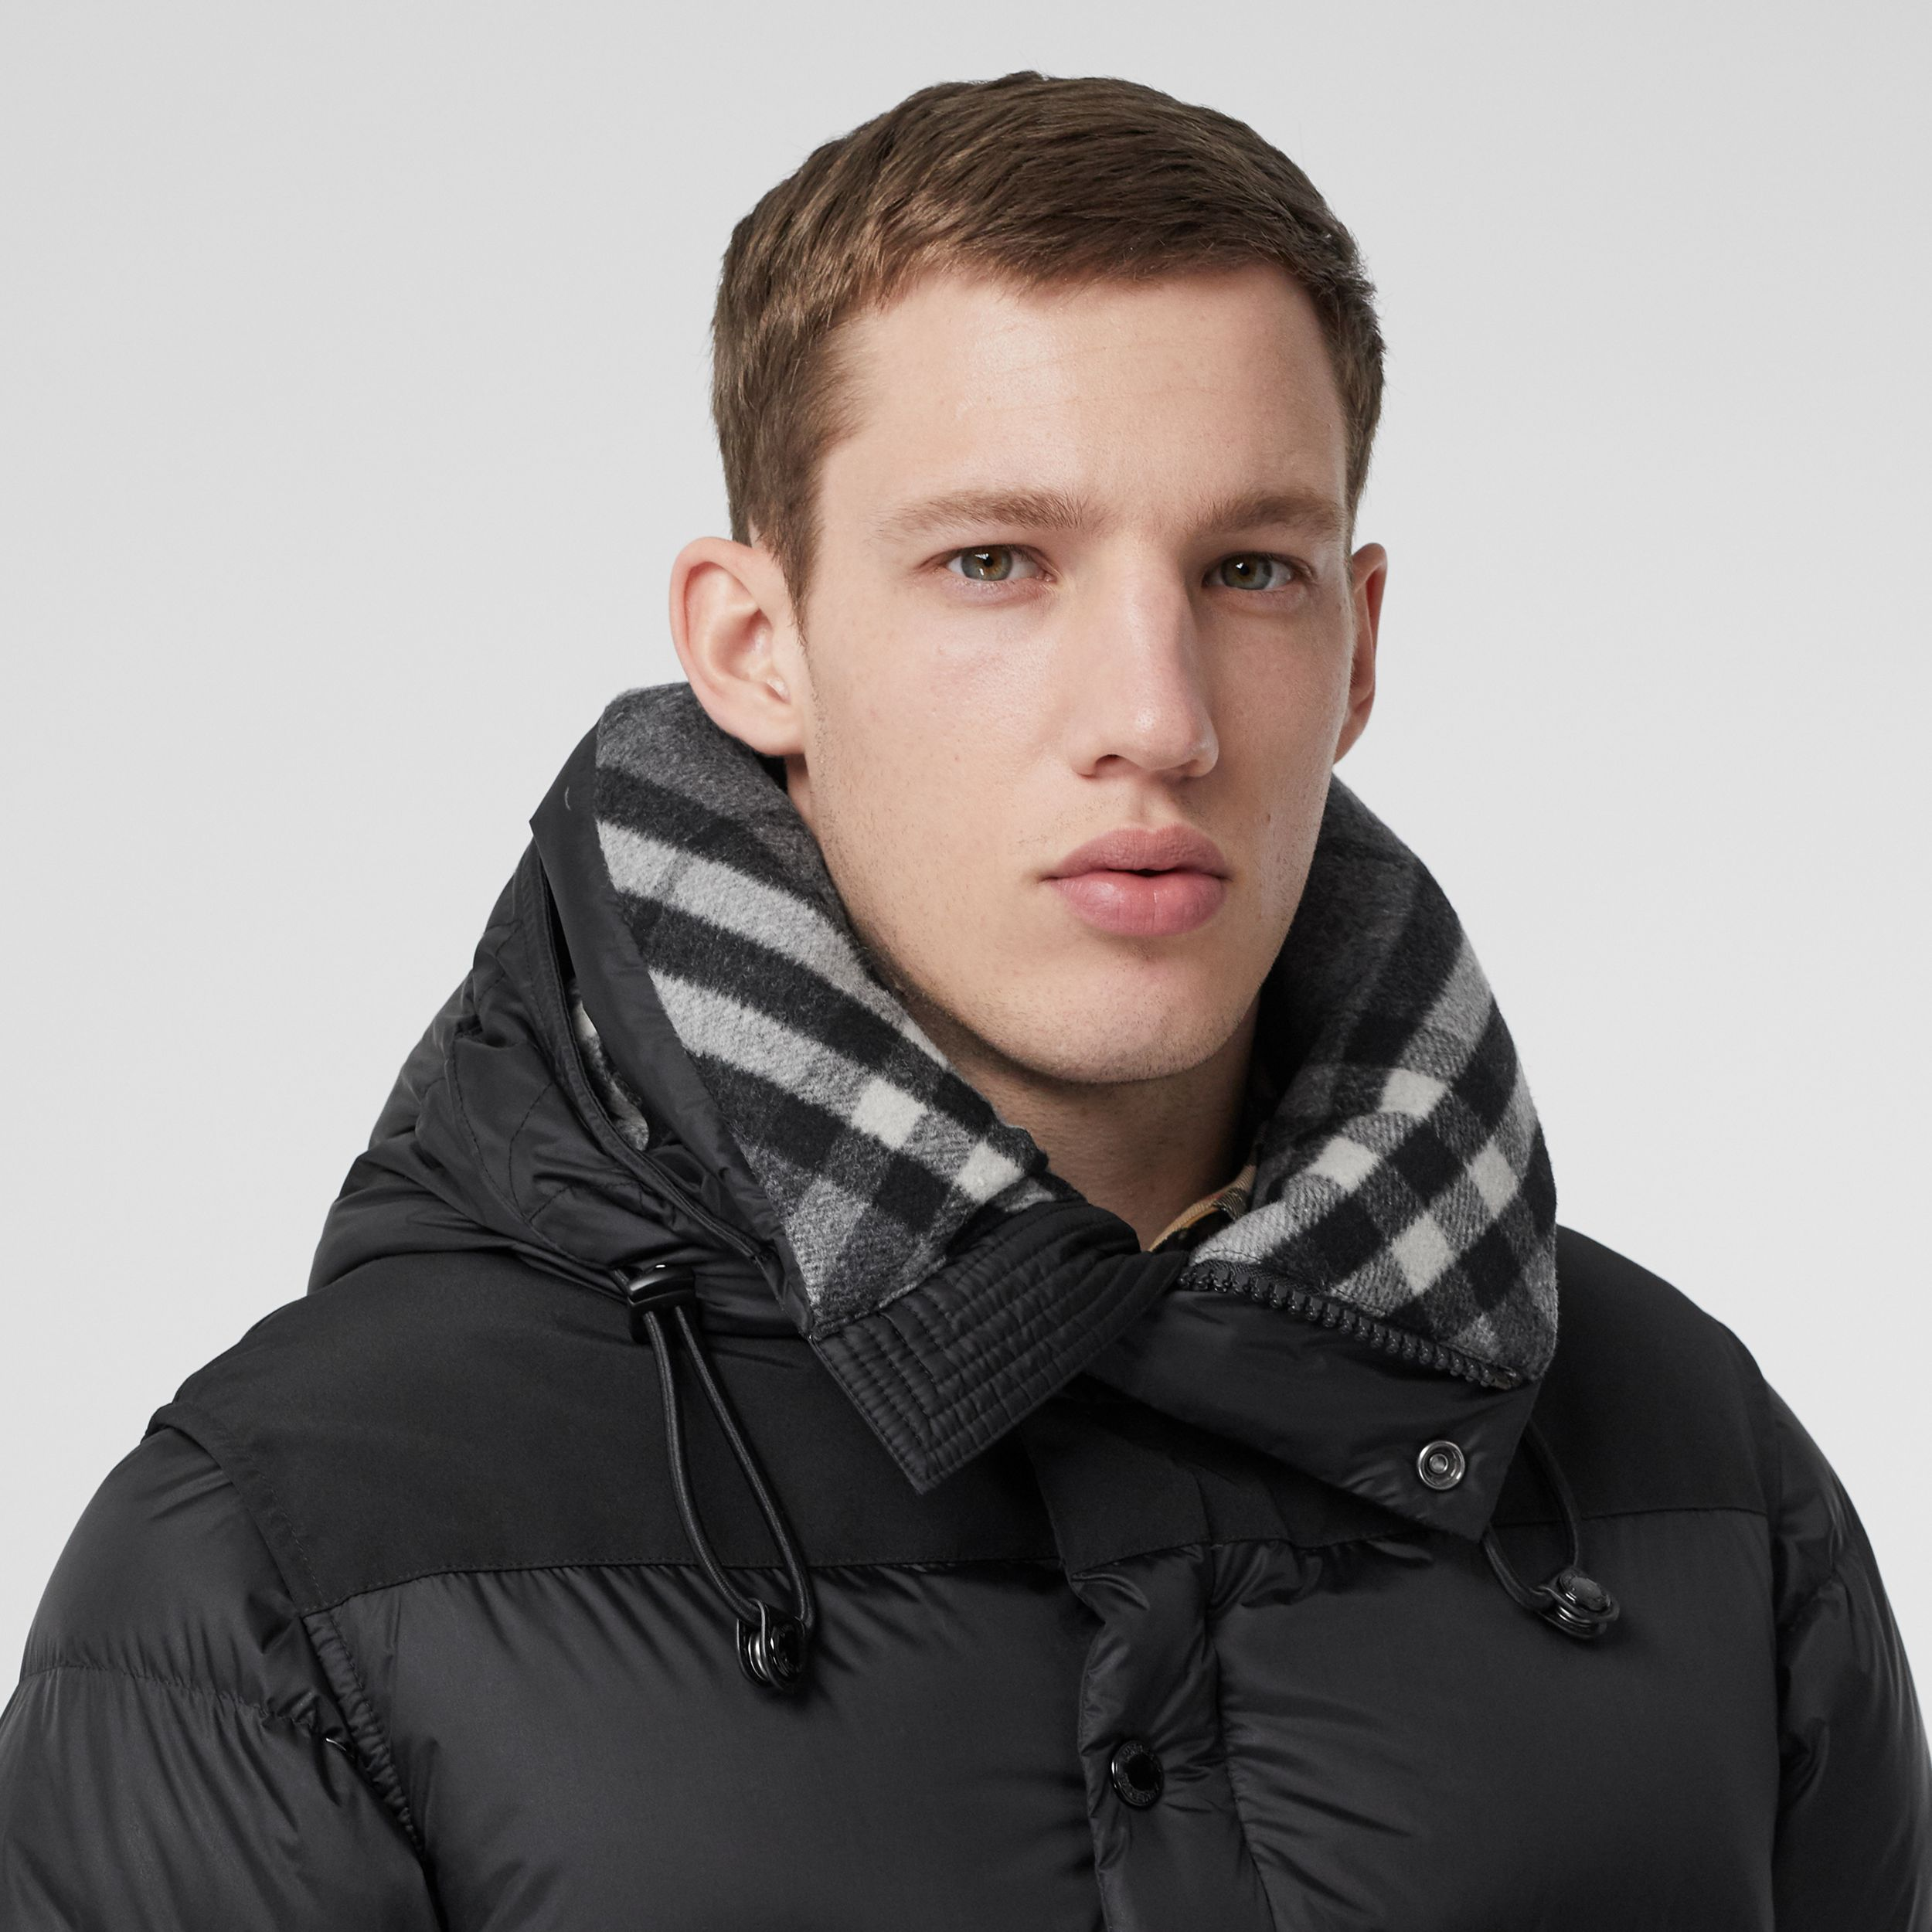 Detachable Sleeve Hooded Puffer Jacket in Black - Men | Burberry - 2